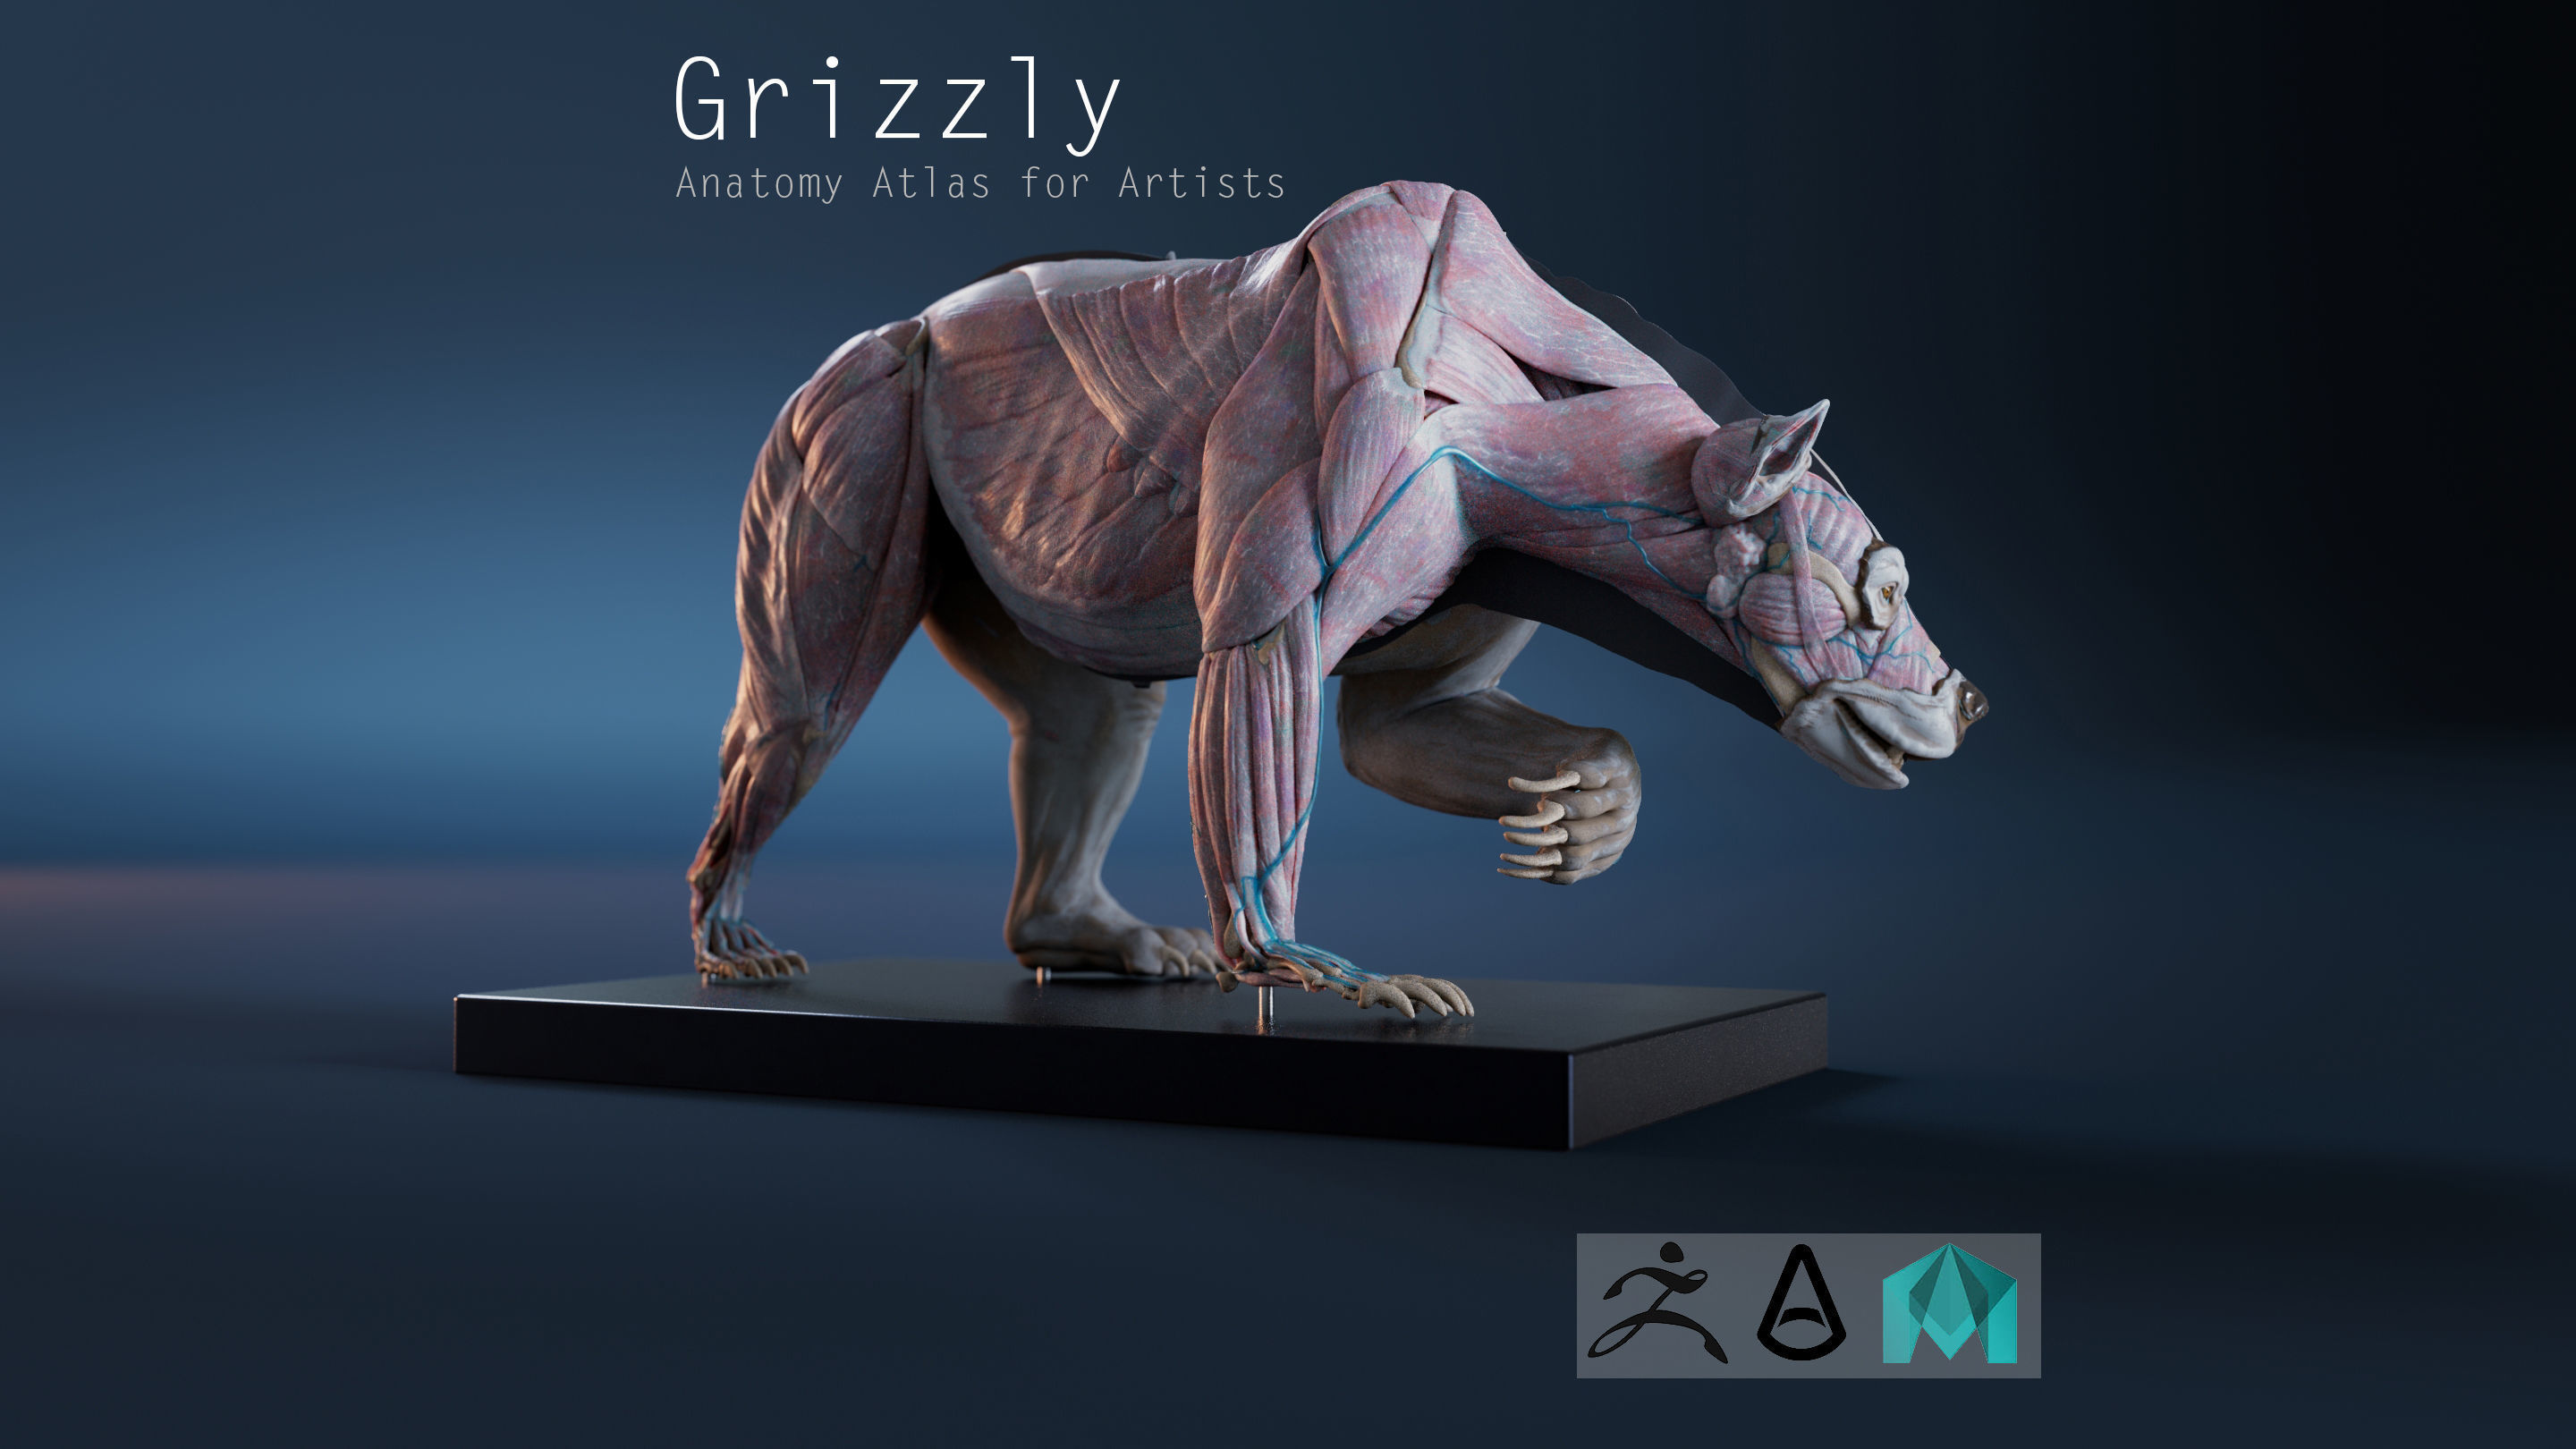 Digital Grizzly bear anatomy Atlas for Artists and creature FX